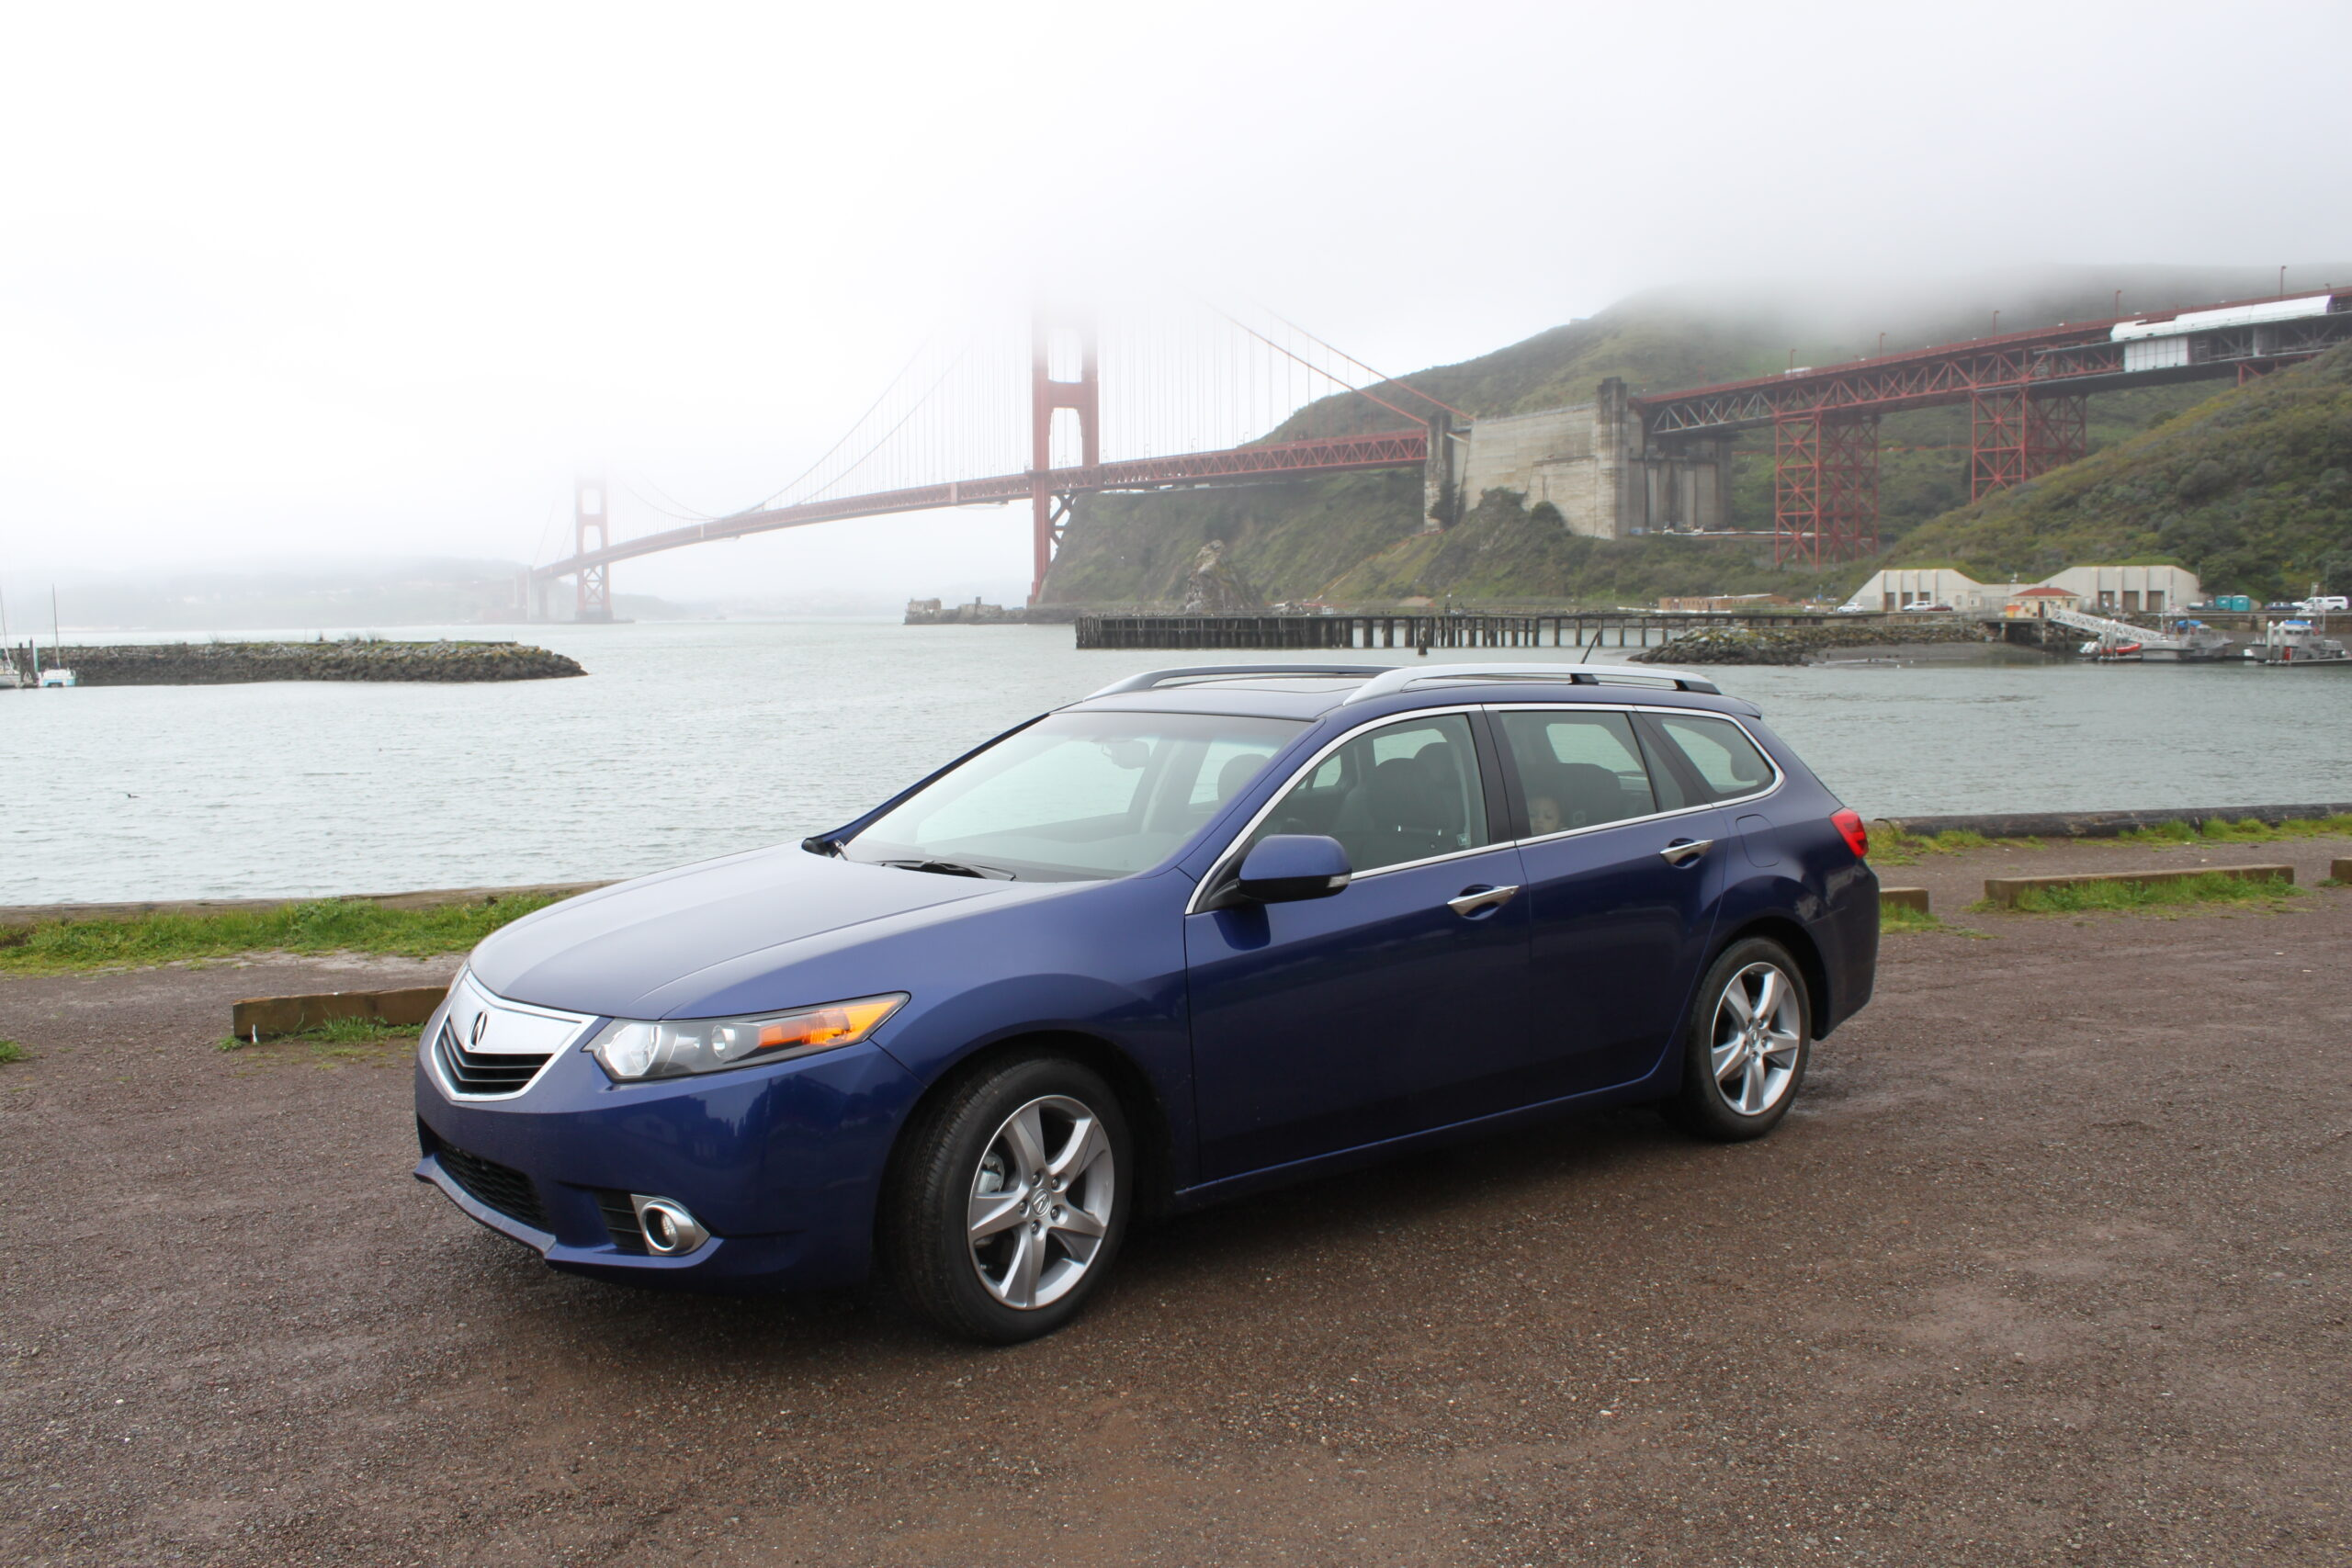 2012 Acura TSX Sport Wagon – Review